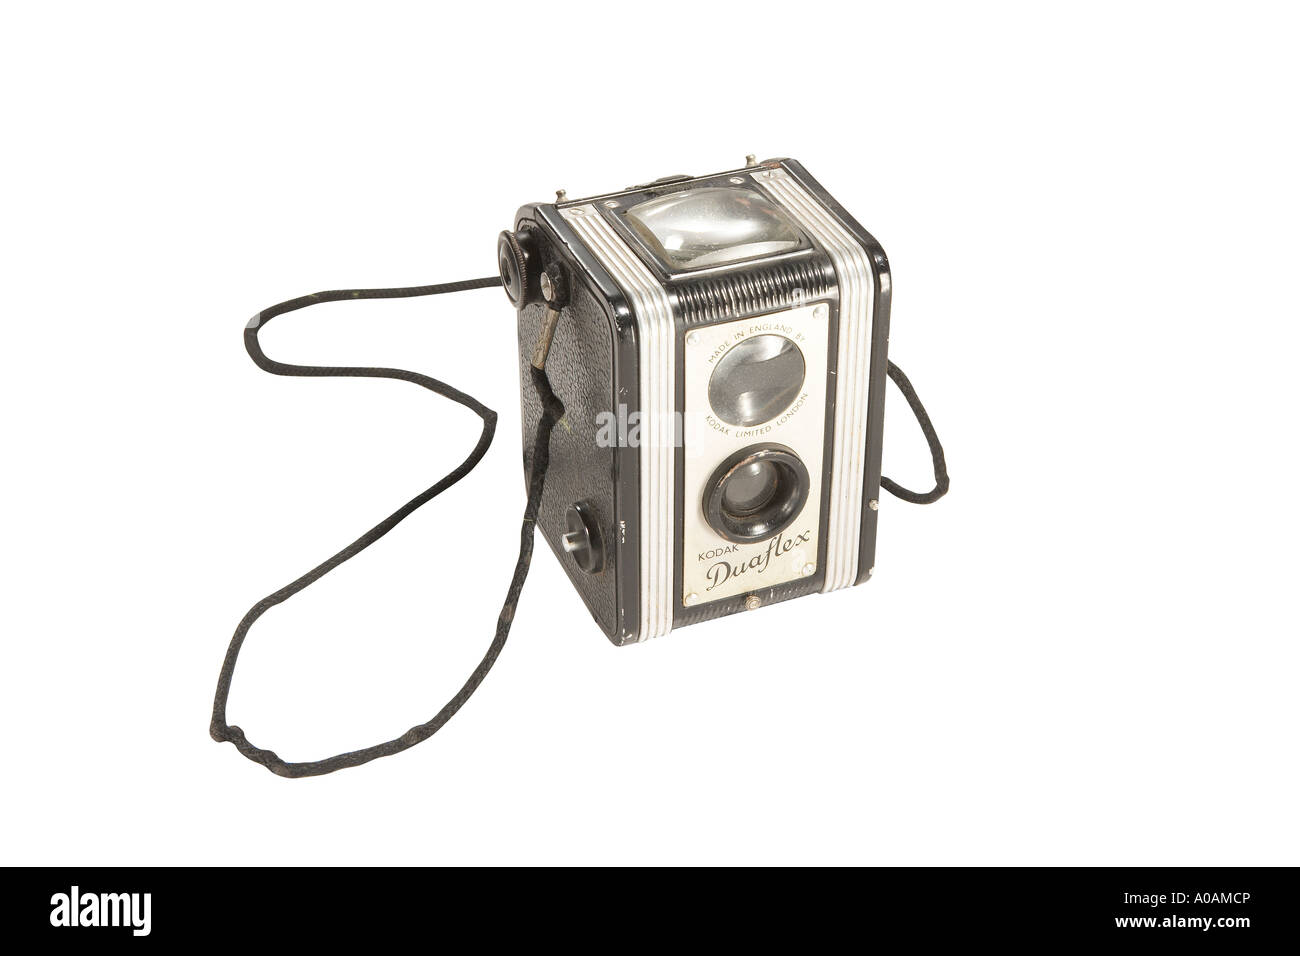 Old camera with clipping path - Stock Image